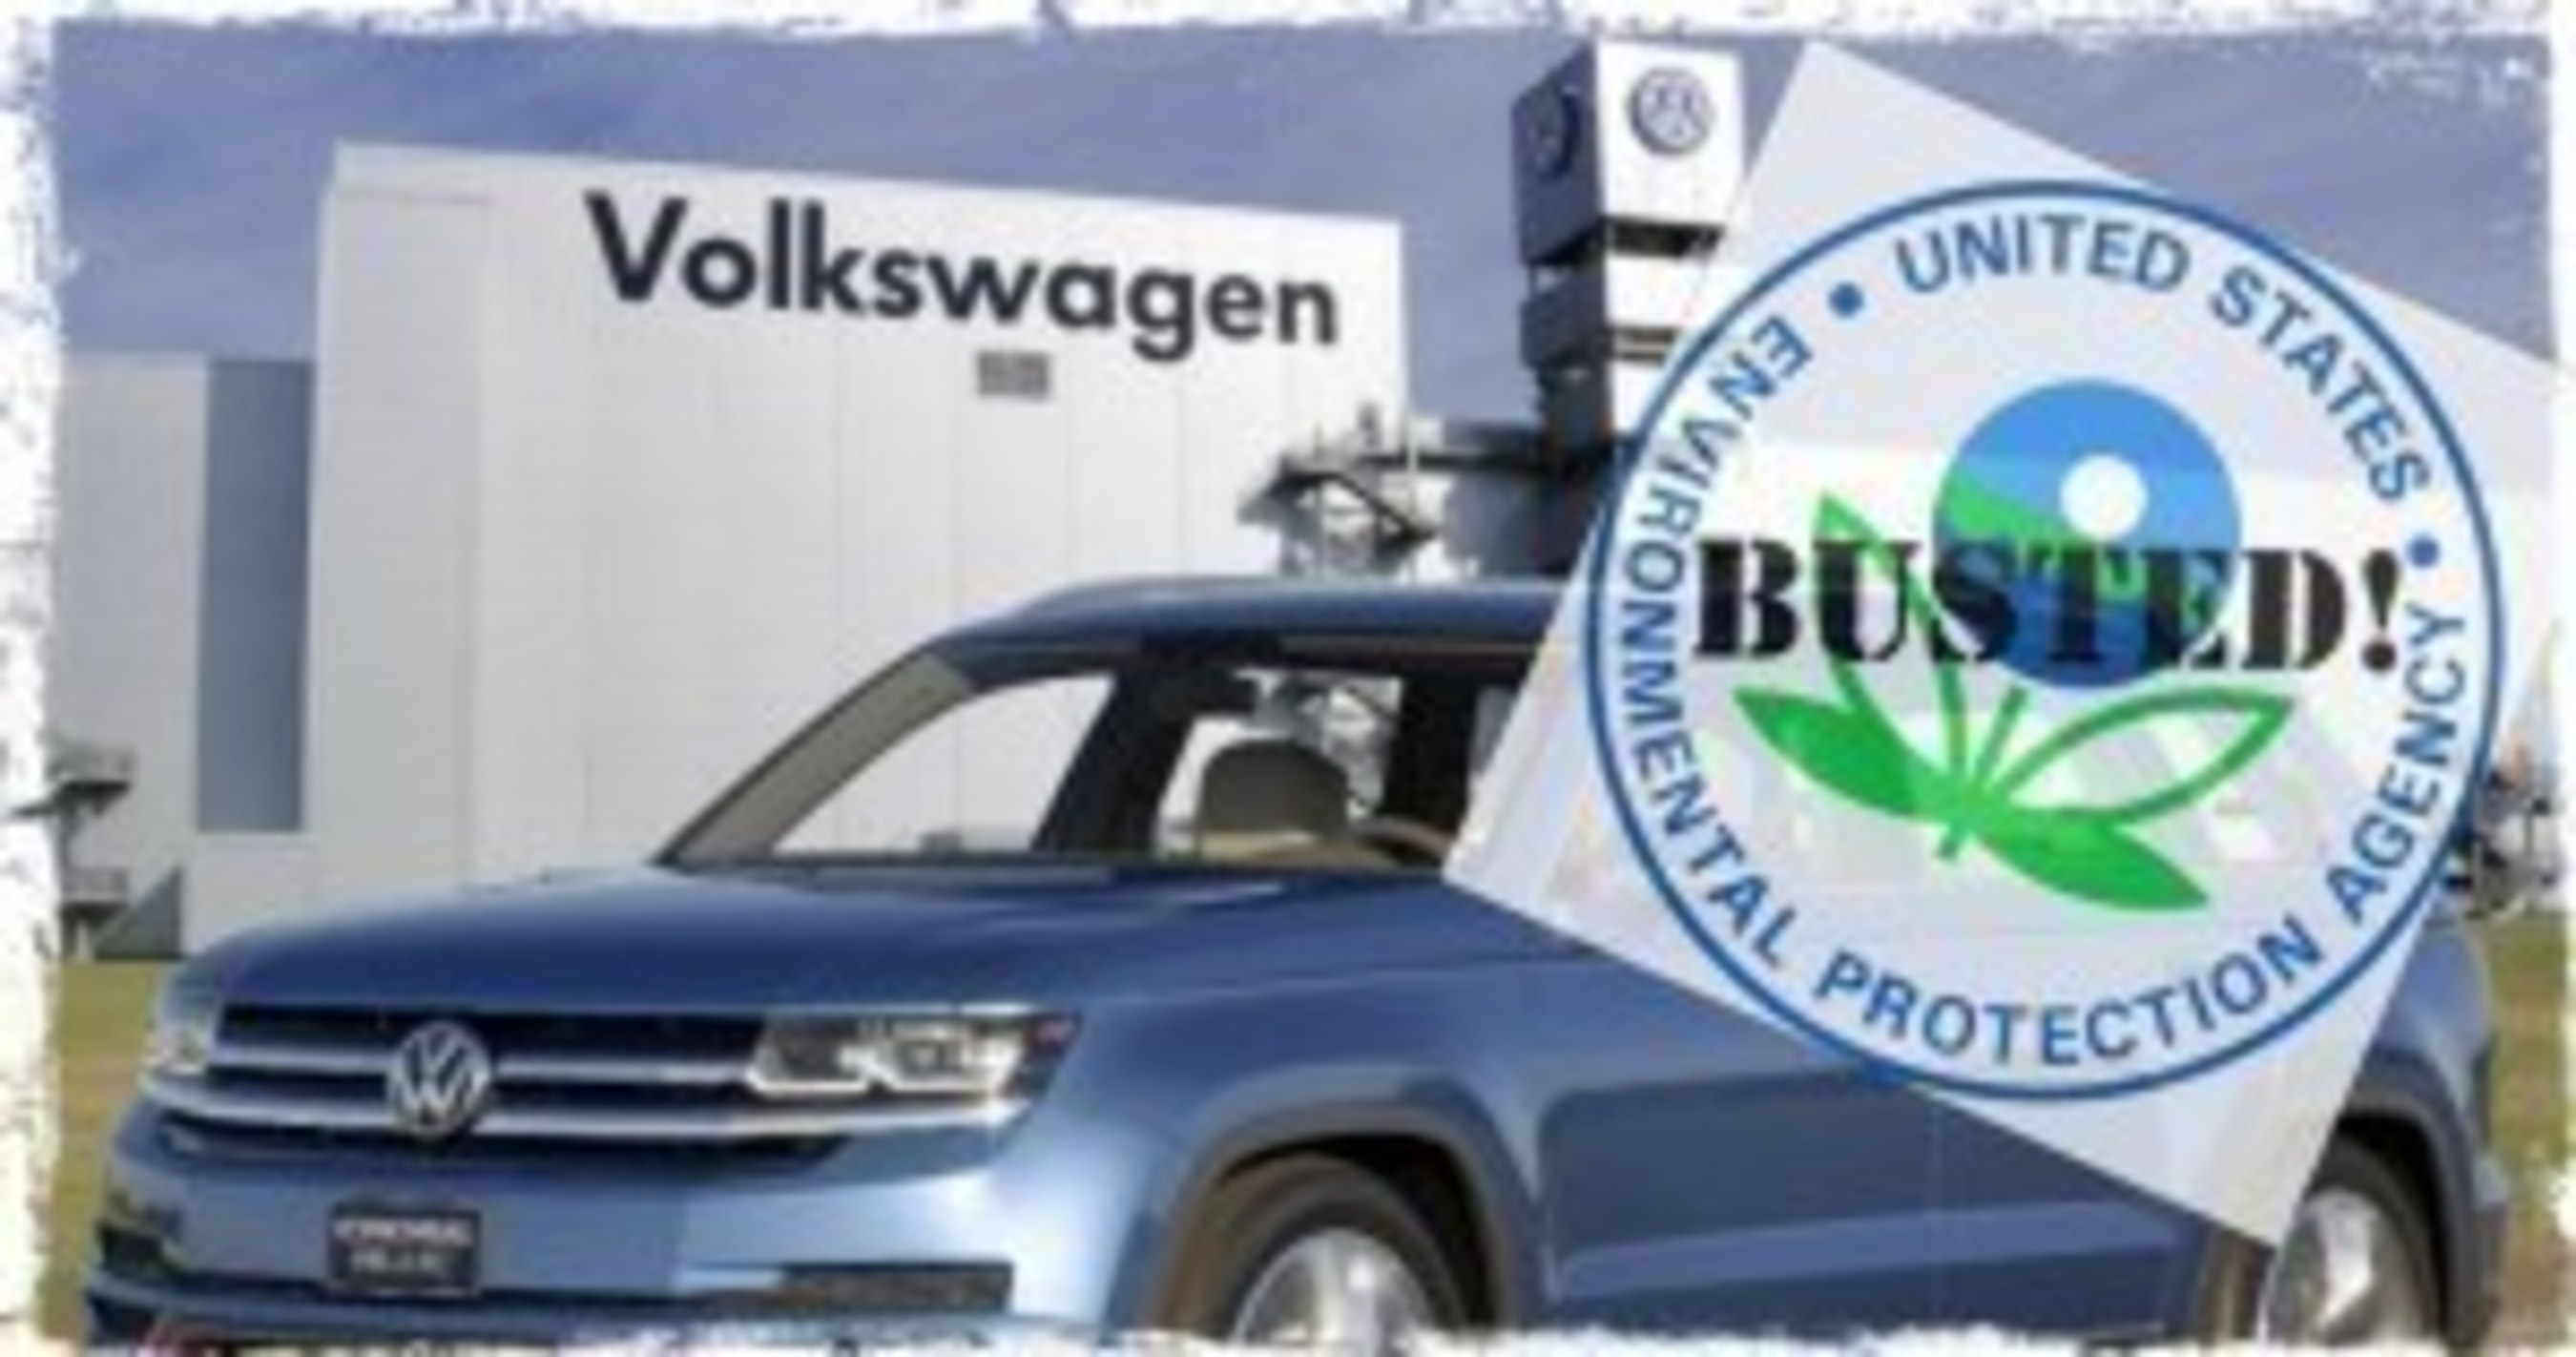 Volkswagen Scandal Widens After EPA Discovered Emission Cheating Software In Luxury Cars